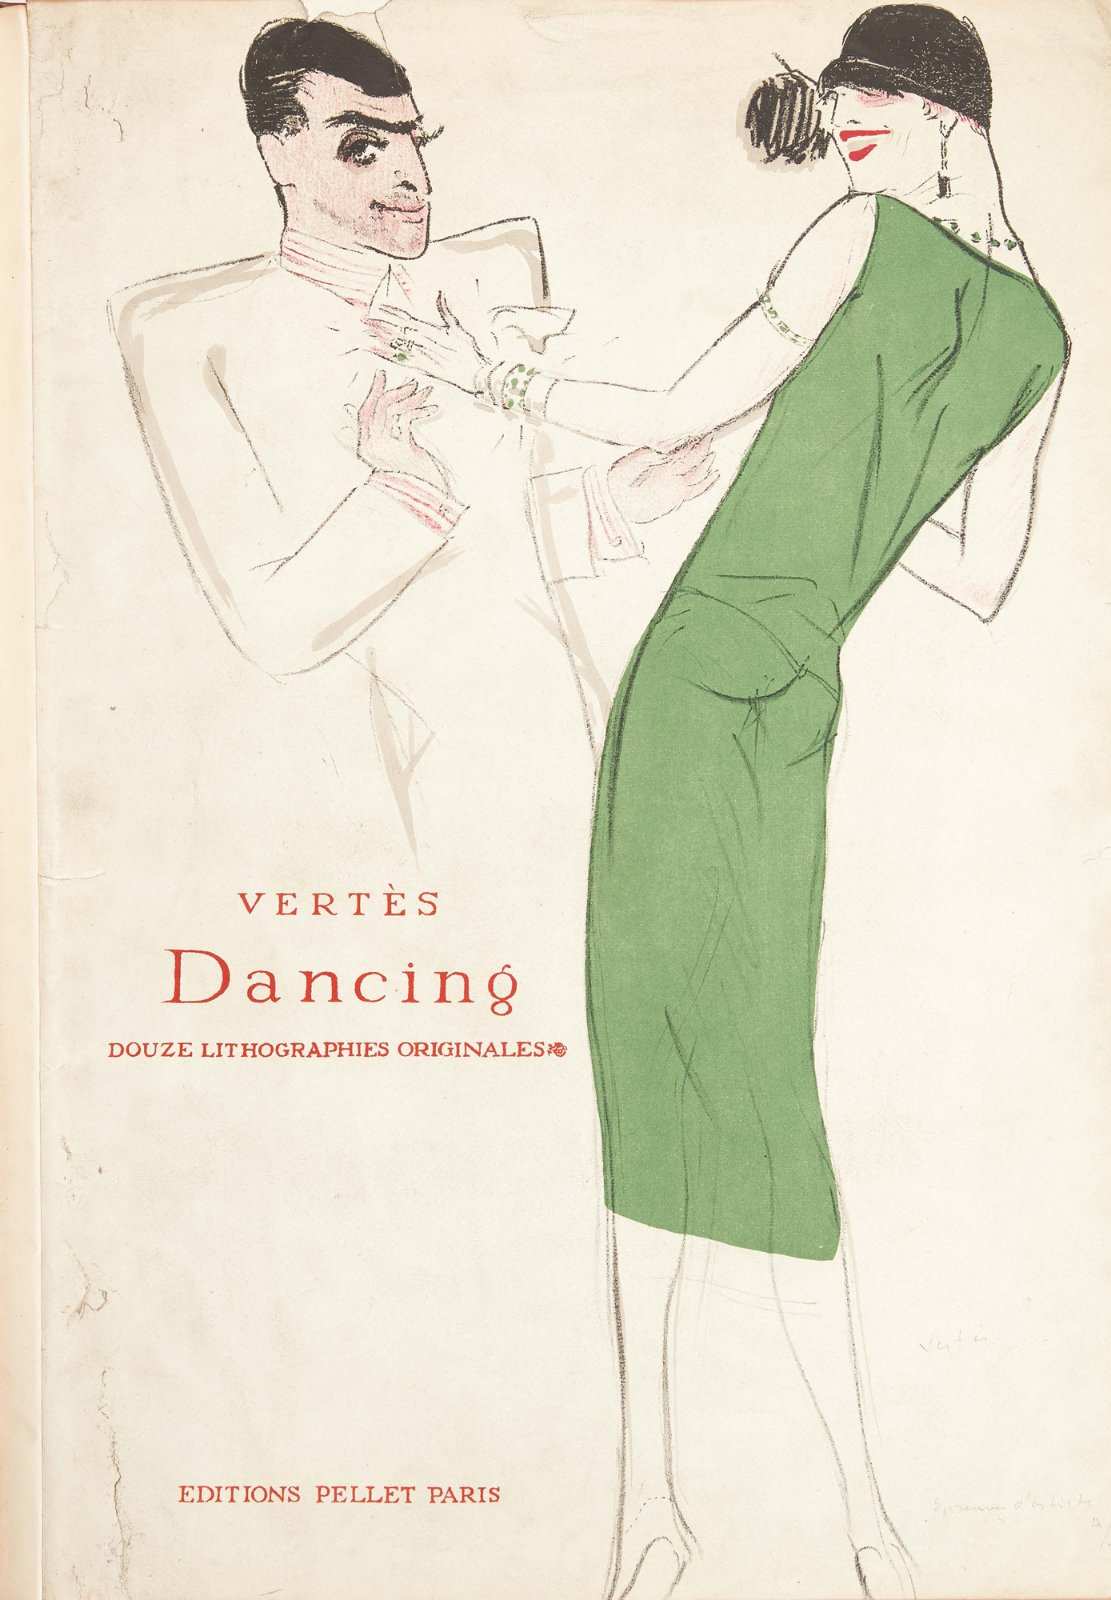 vertes_dancing_12_lithographies.jpg